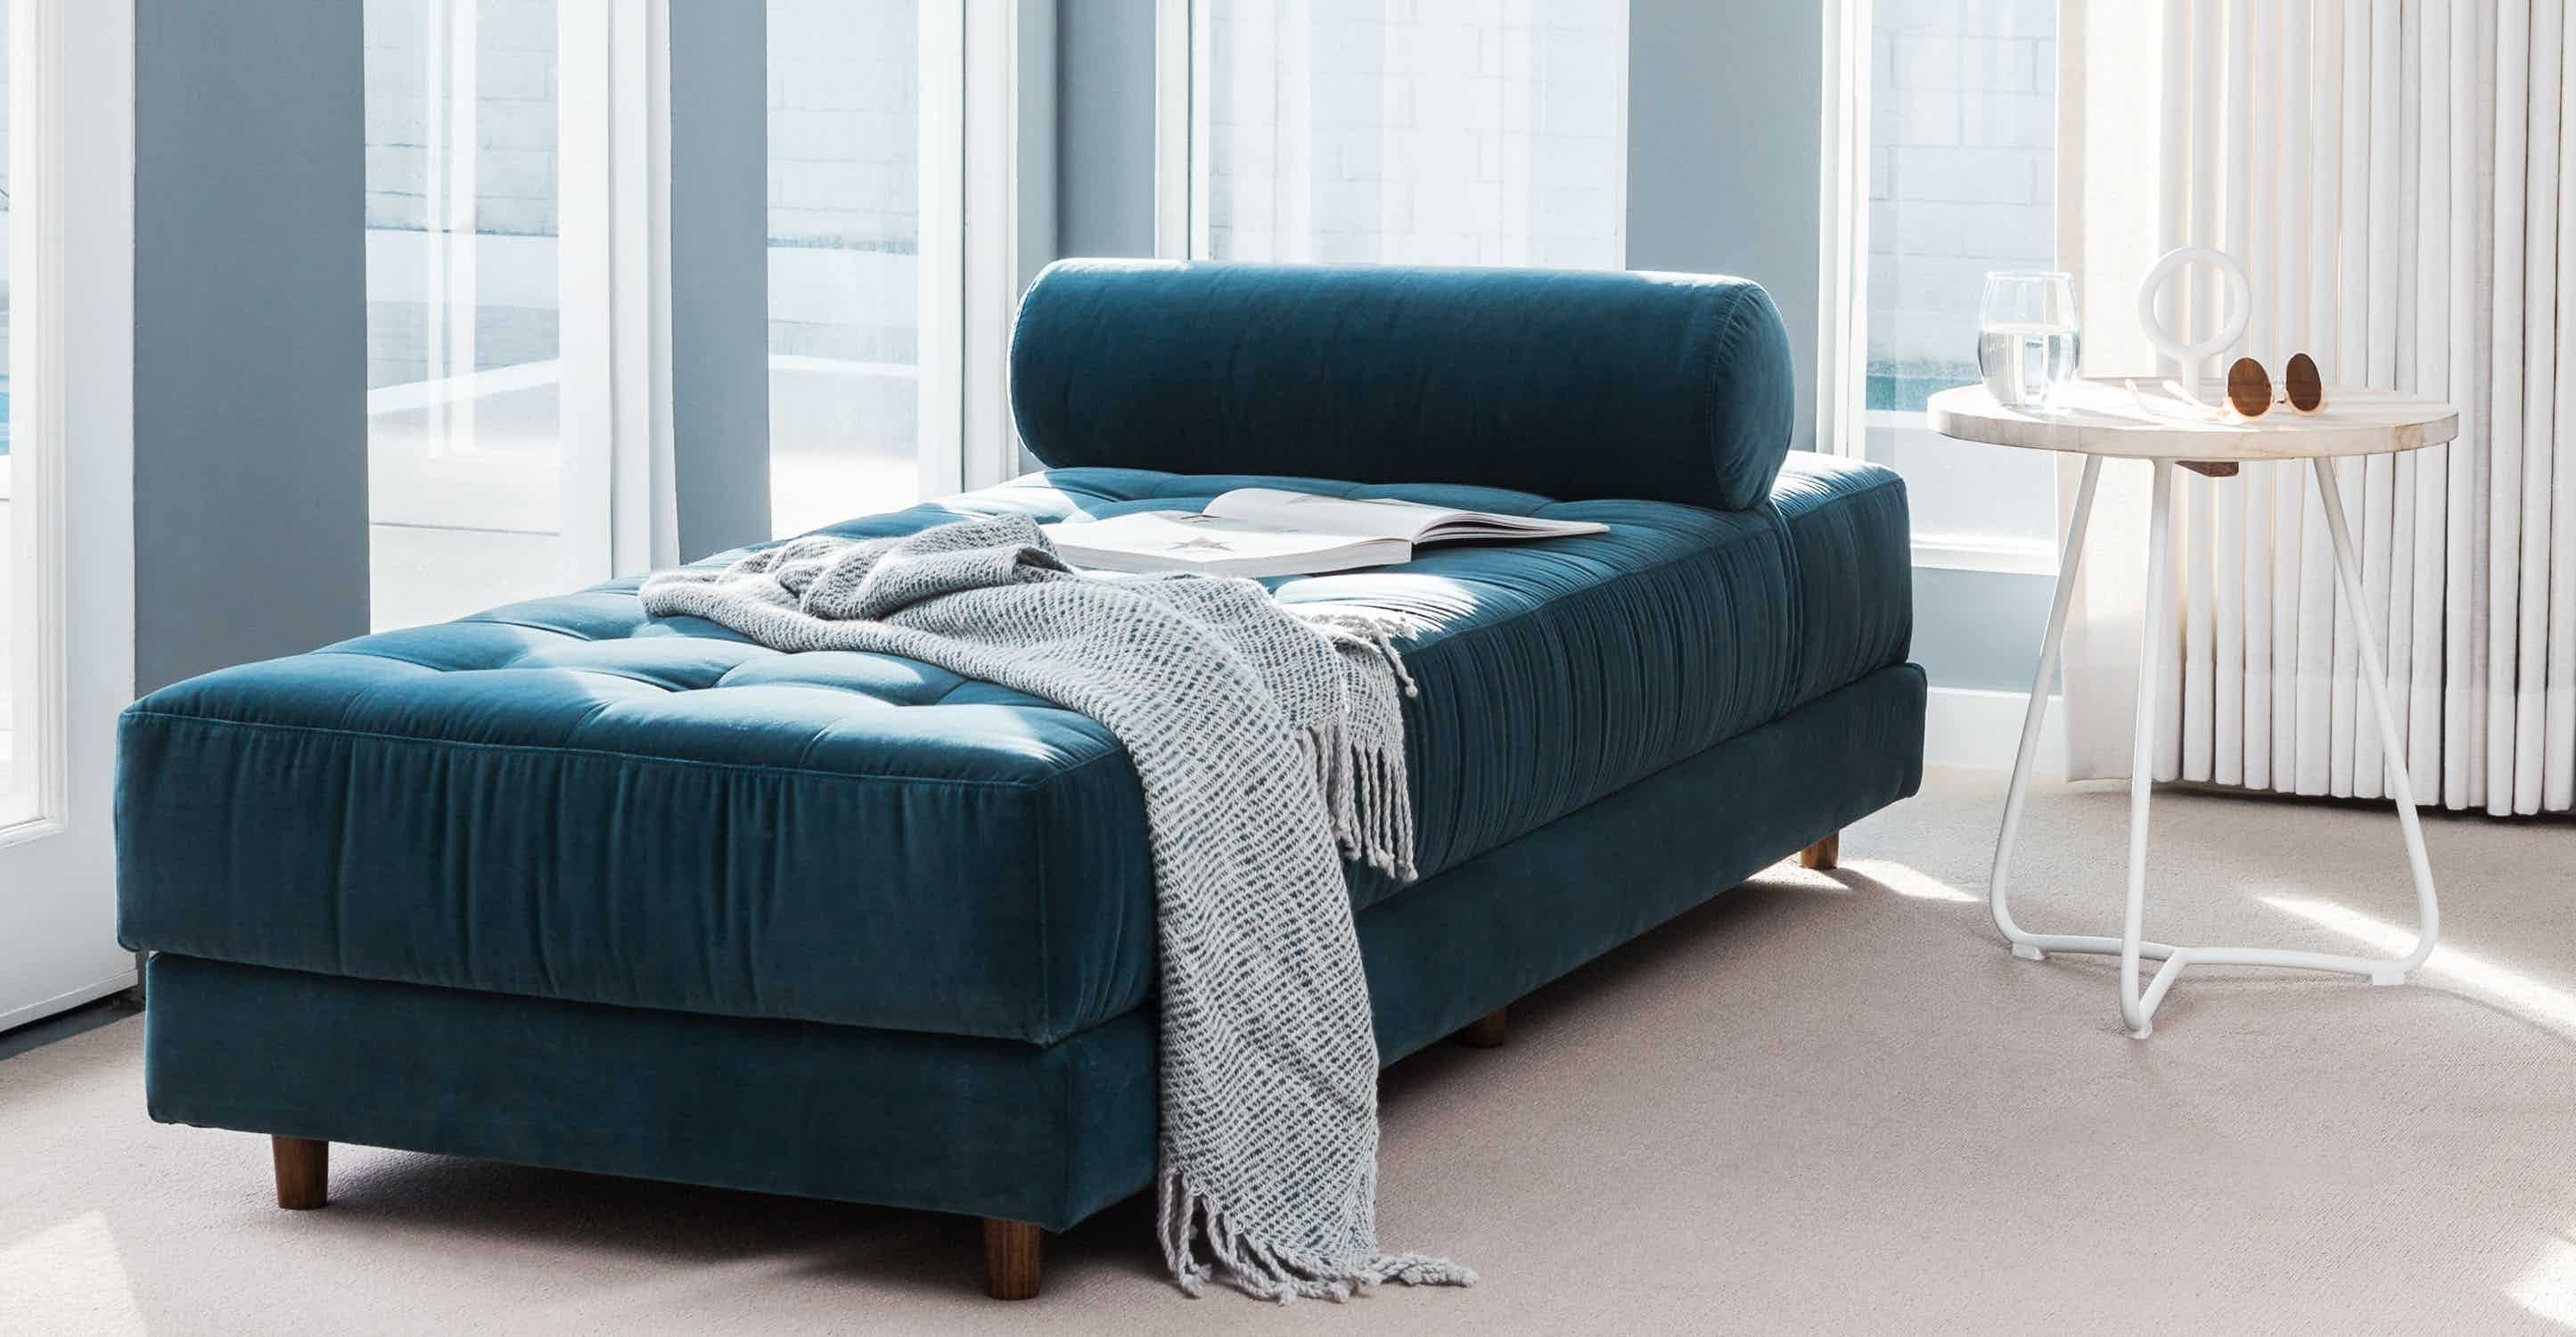 Sven Cascadia Blue Daybed